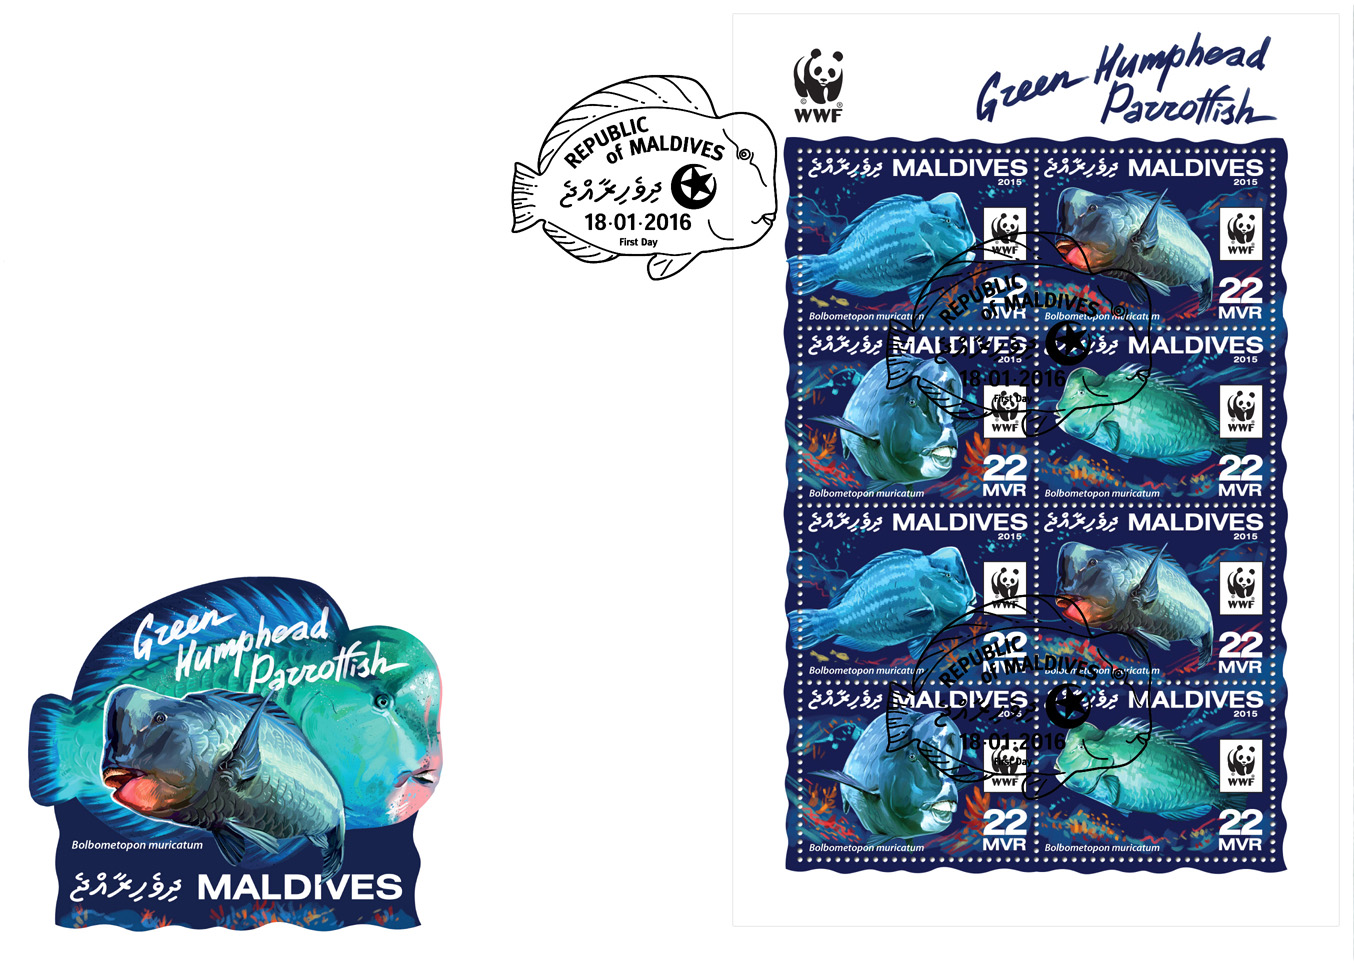 WWF – Parrotfish (FDC) - Issue of Maldives postage stamps